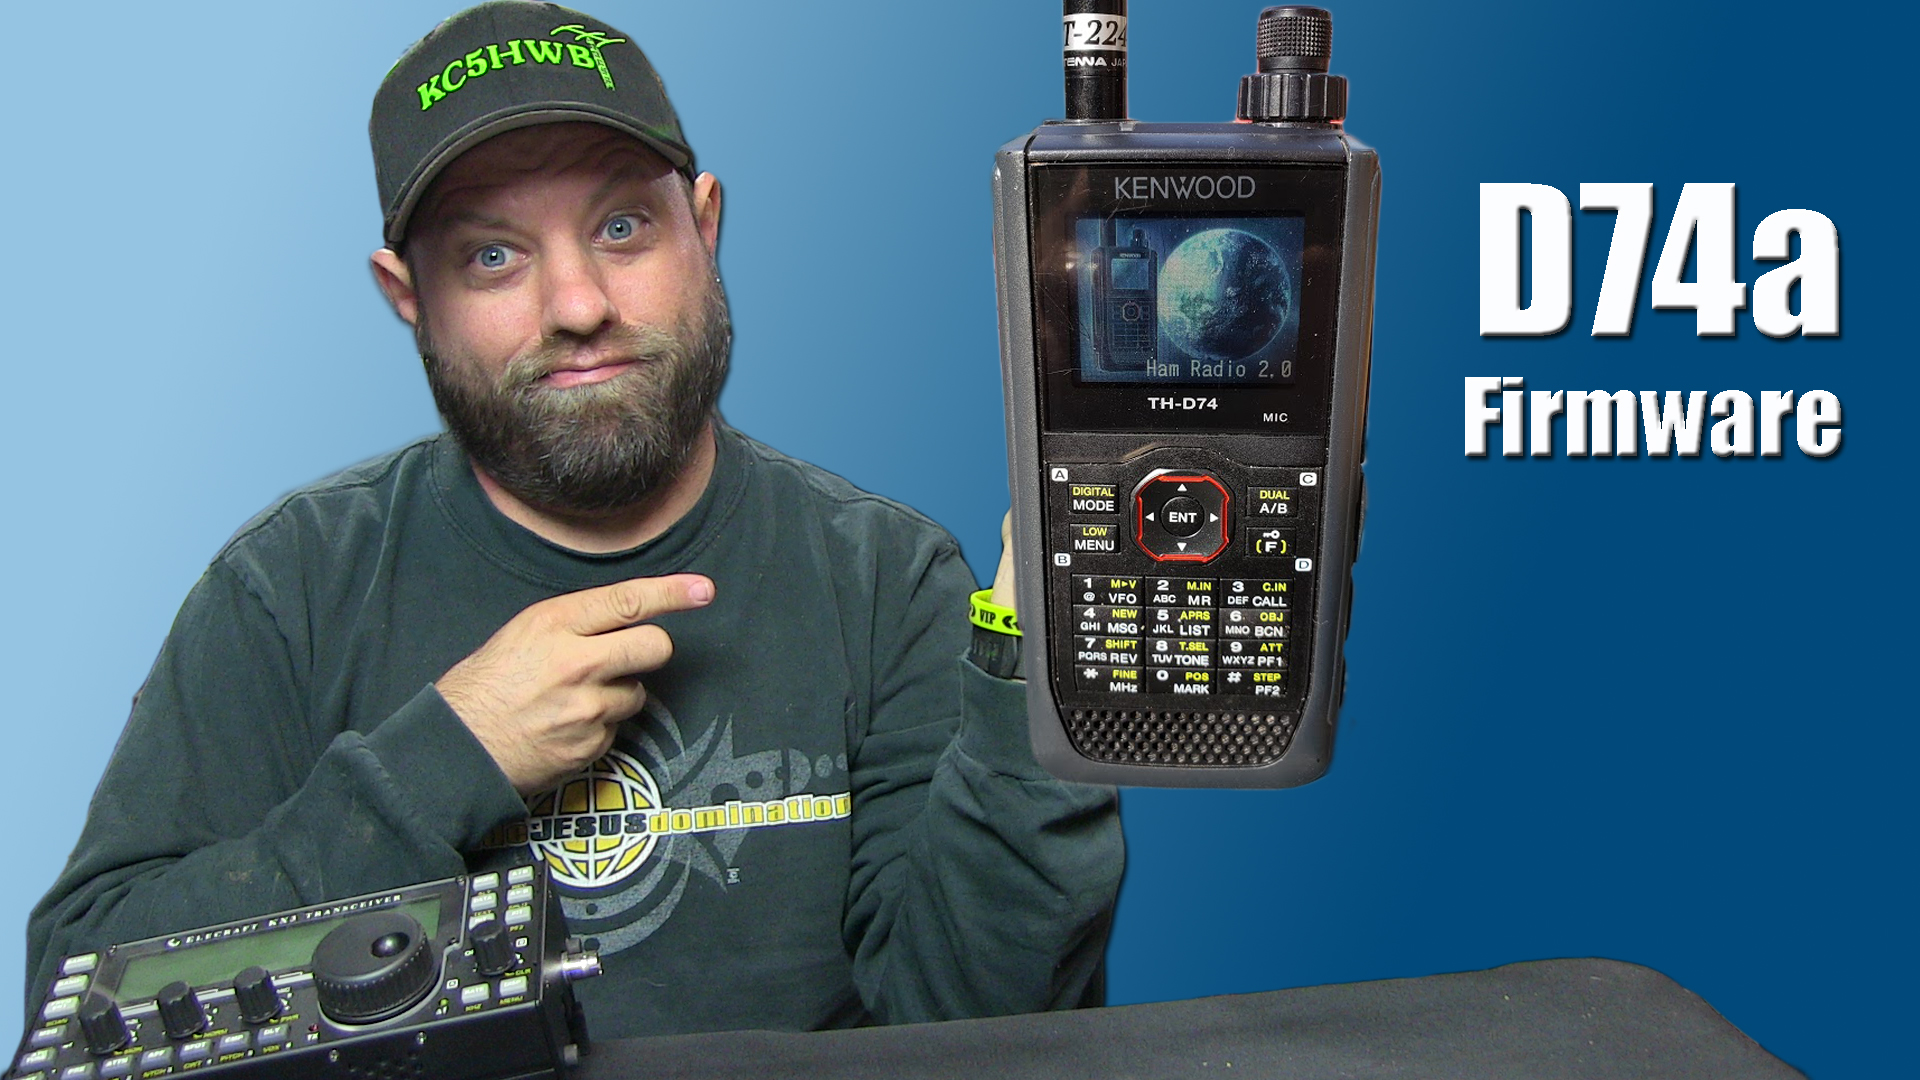 Episode 198: How To Update Firmware on the Kenwood TH-D74a